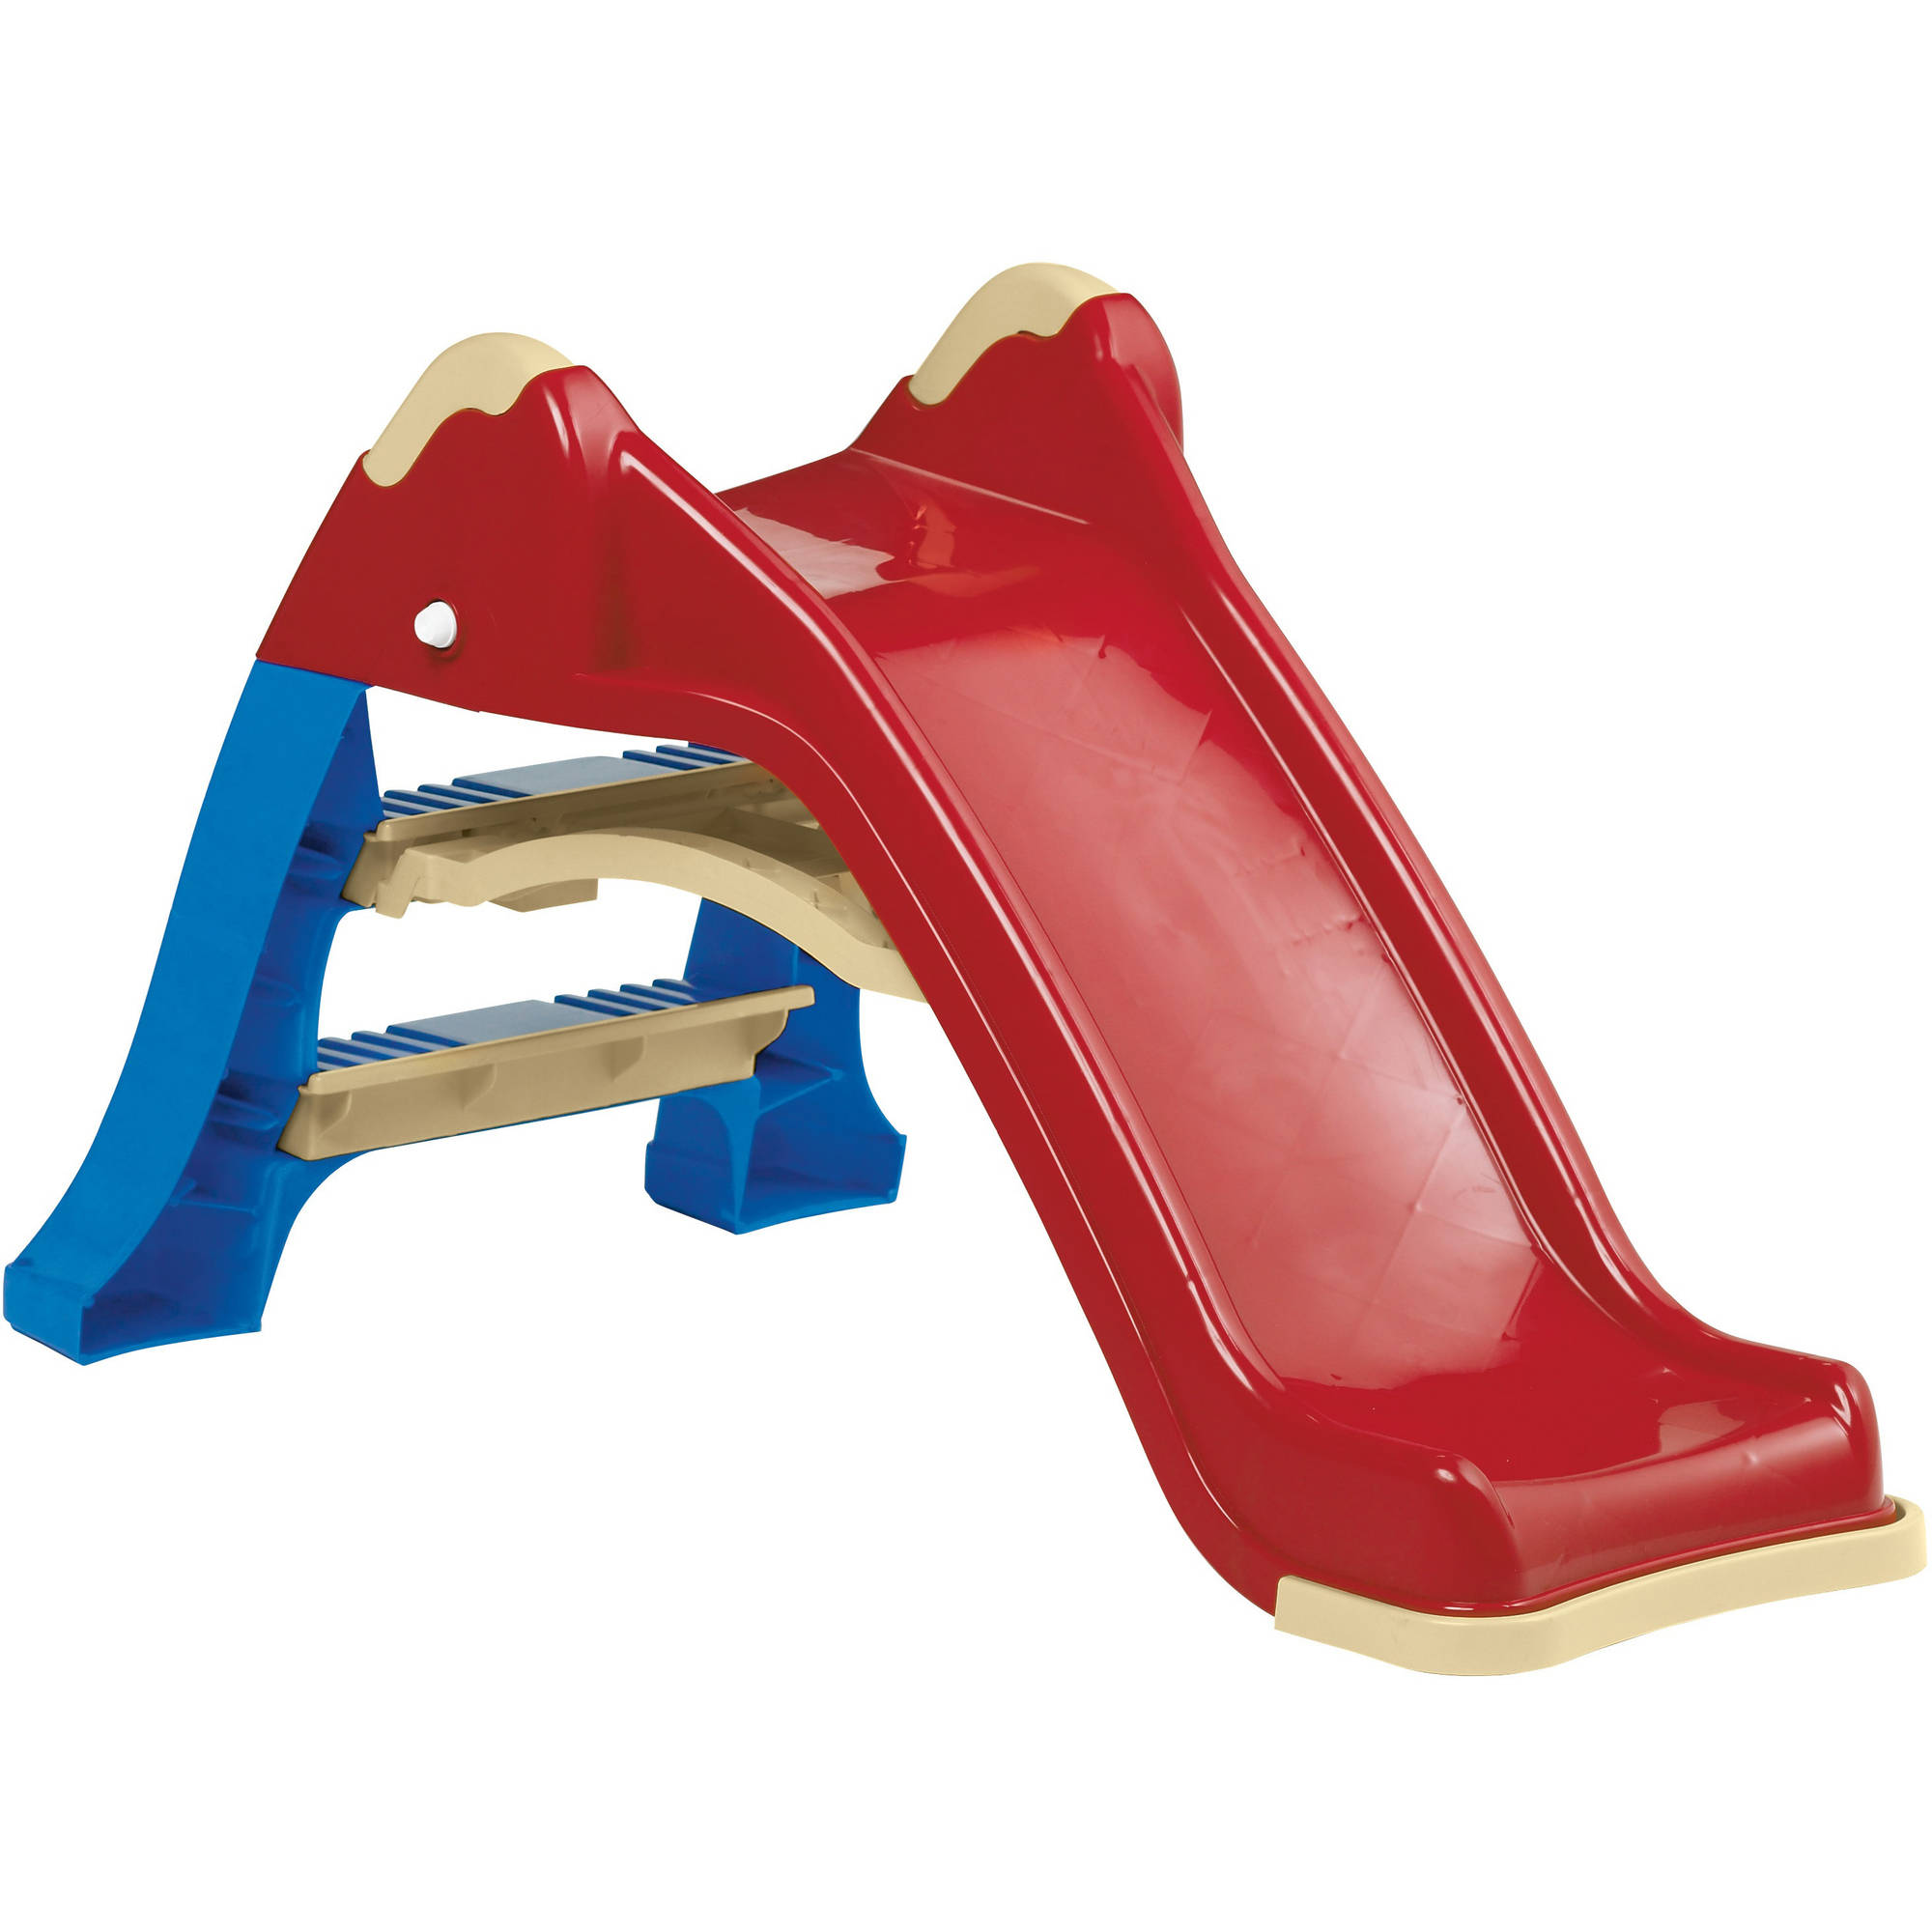 American Plastic Toys Indoor/ Outdoor Folding Slide